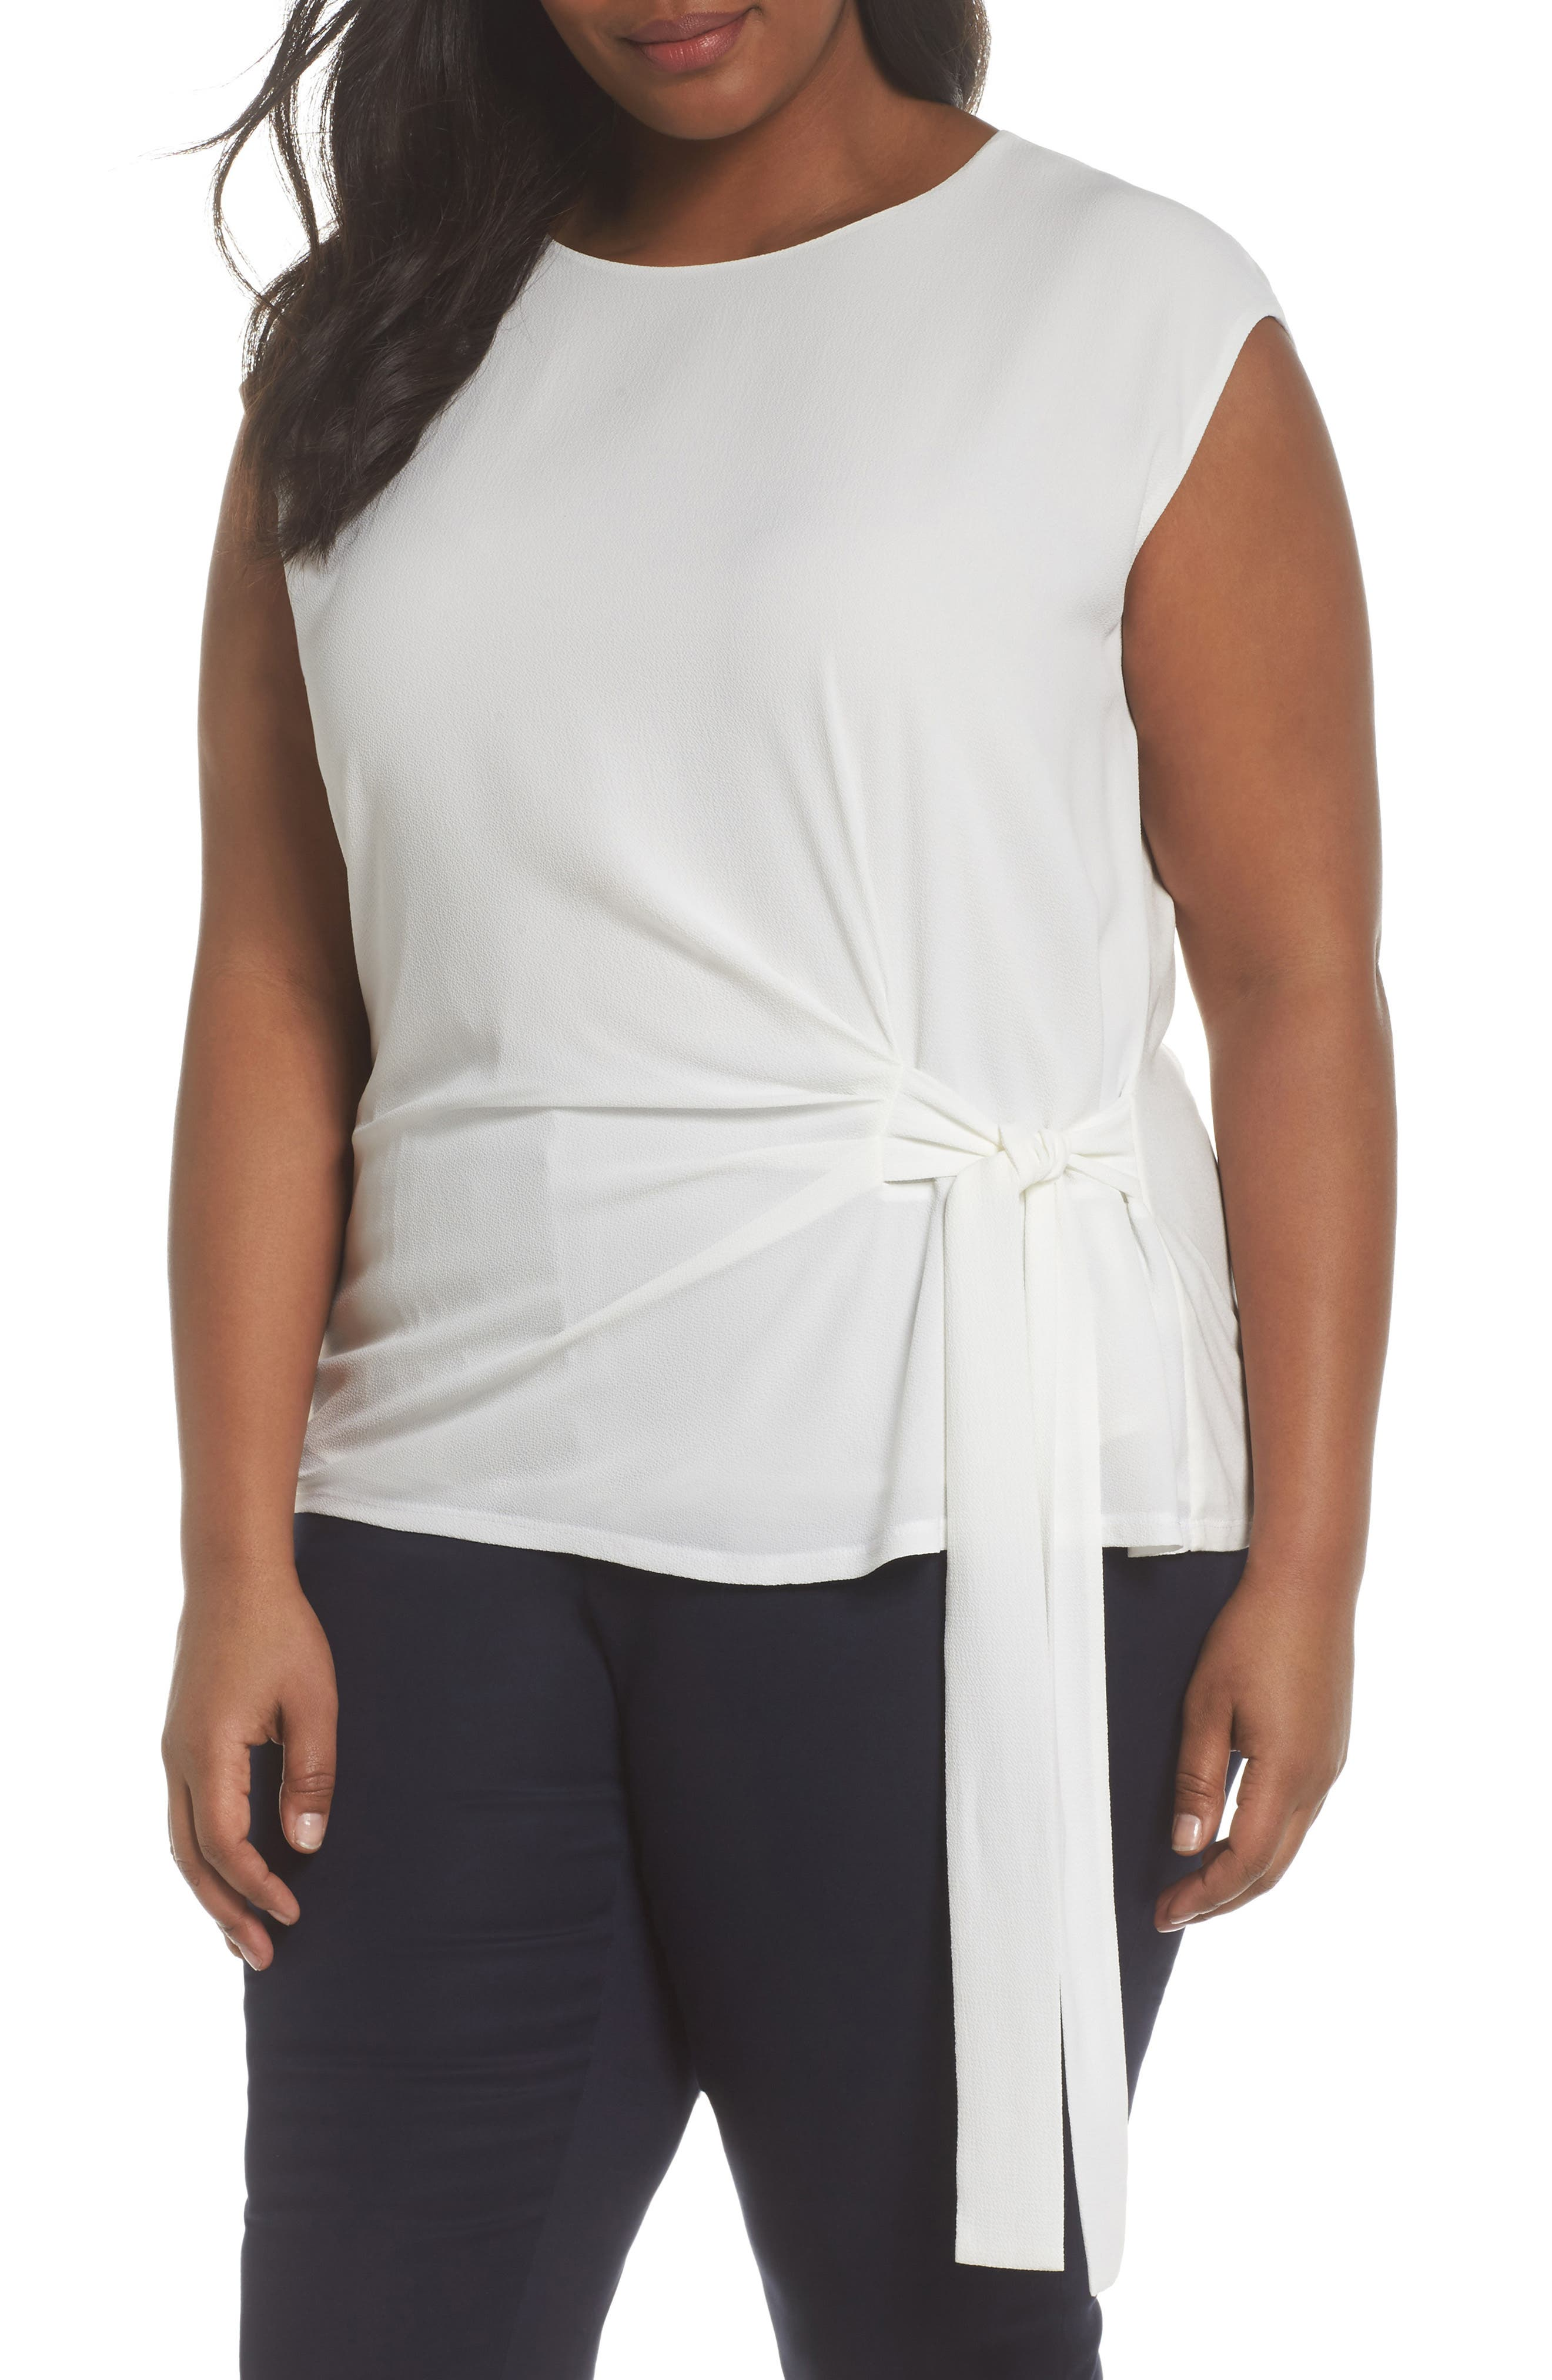 Main Image - Vince Camuto Side Tie Mixed Media Top (Plus Size)